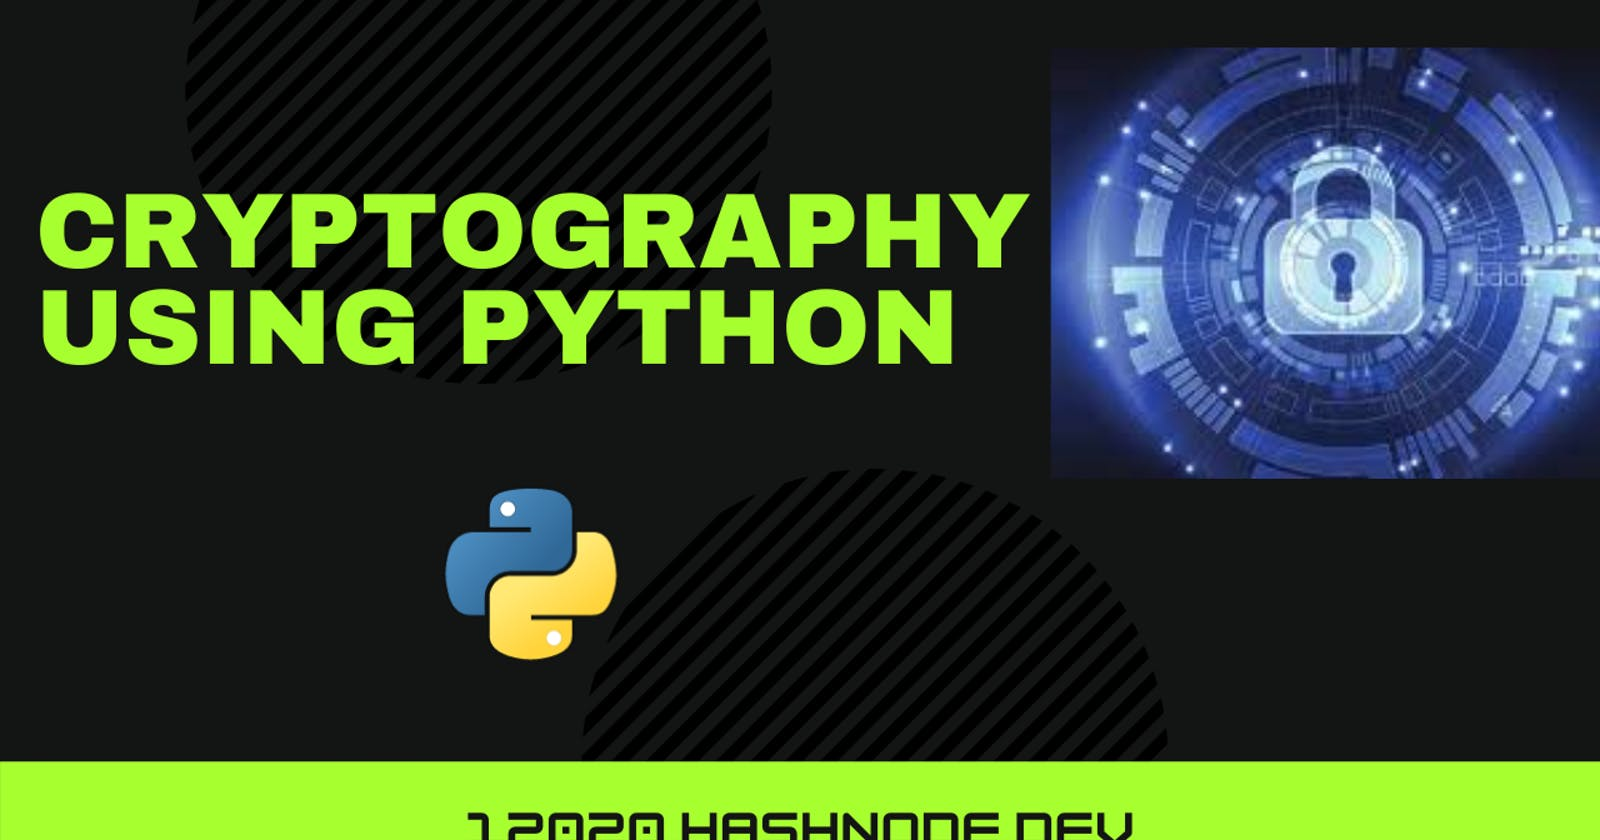 Cryptography with Python using Fernet